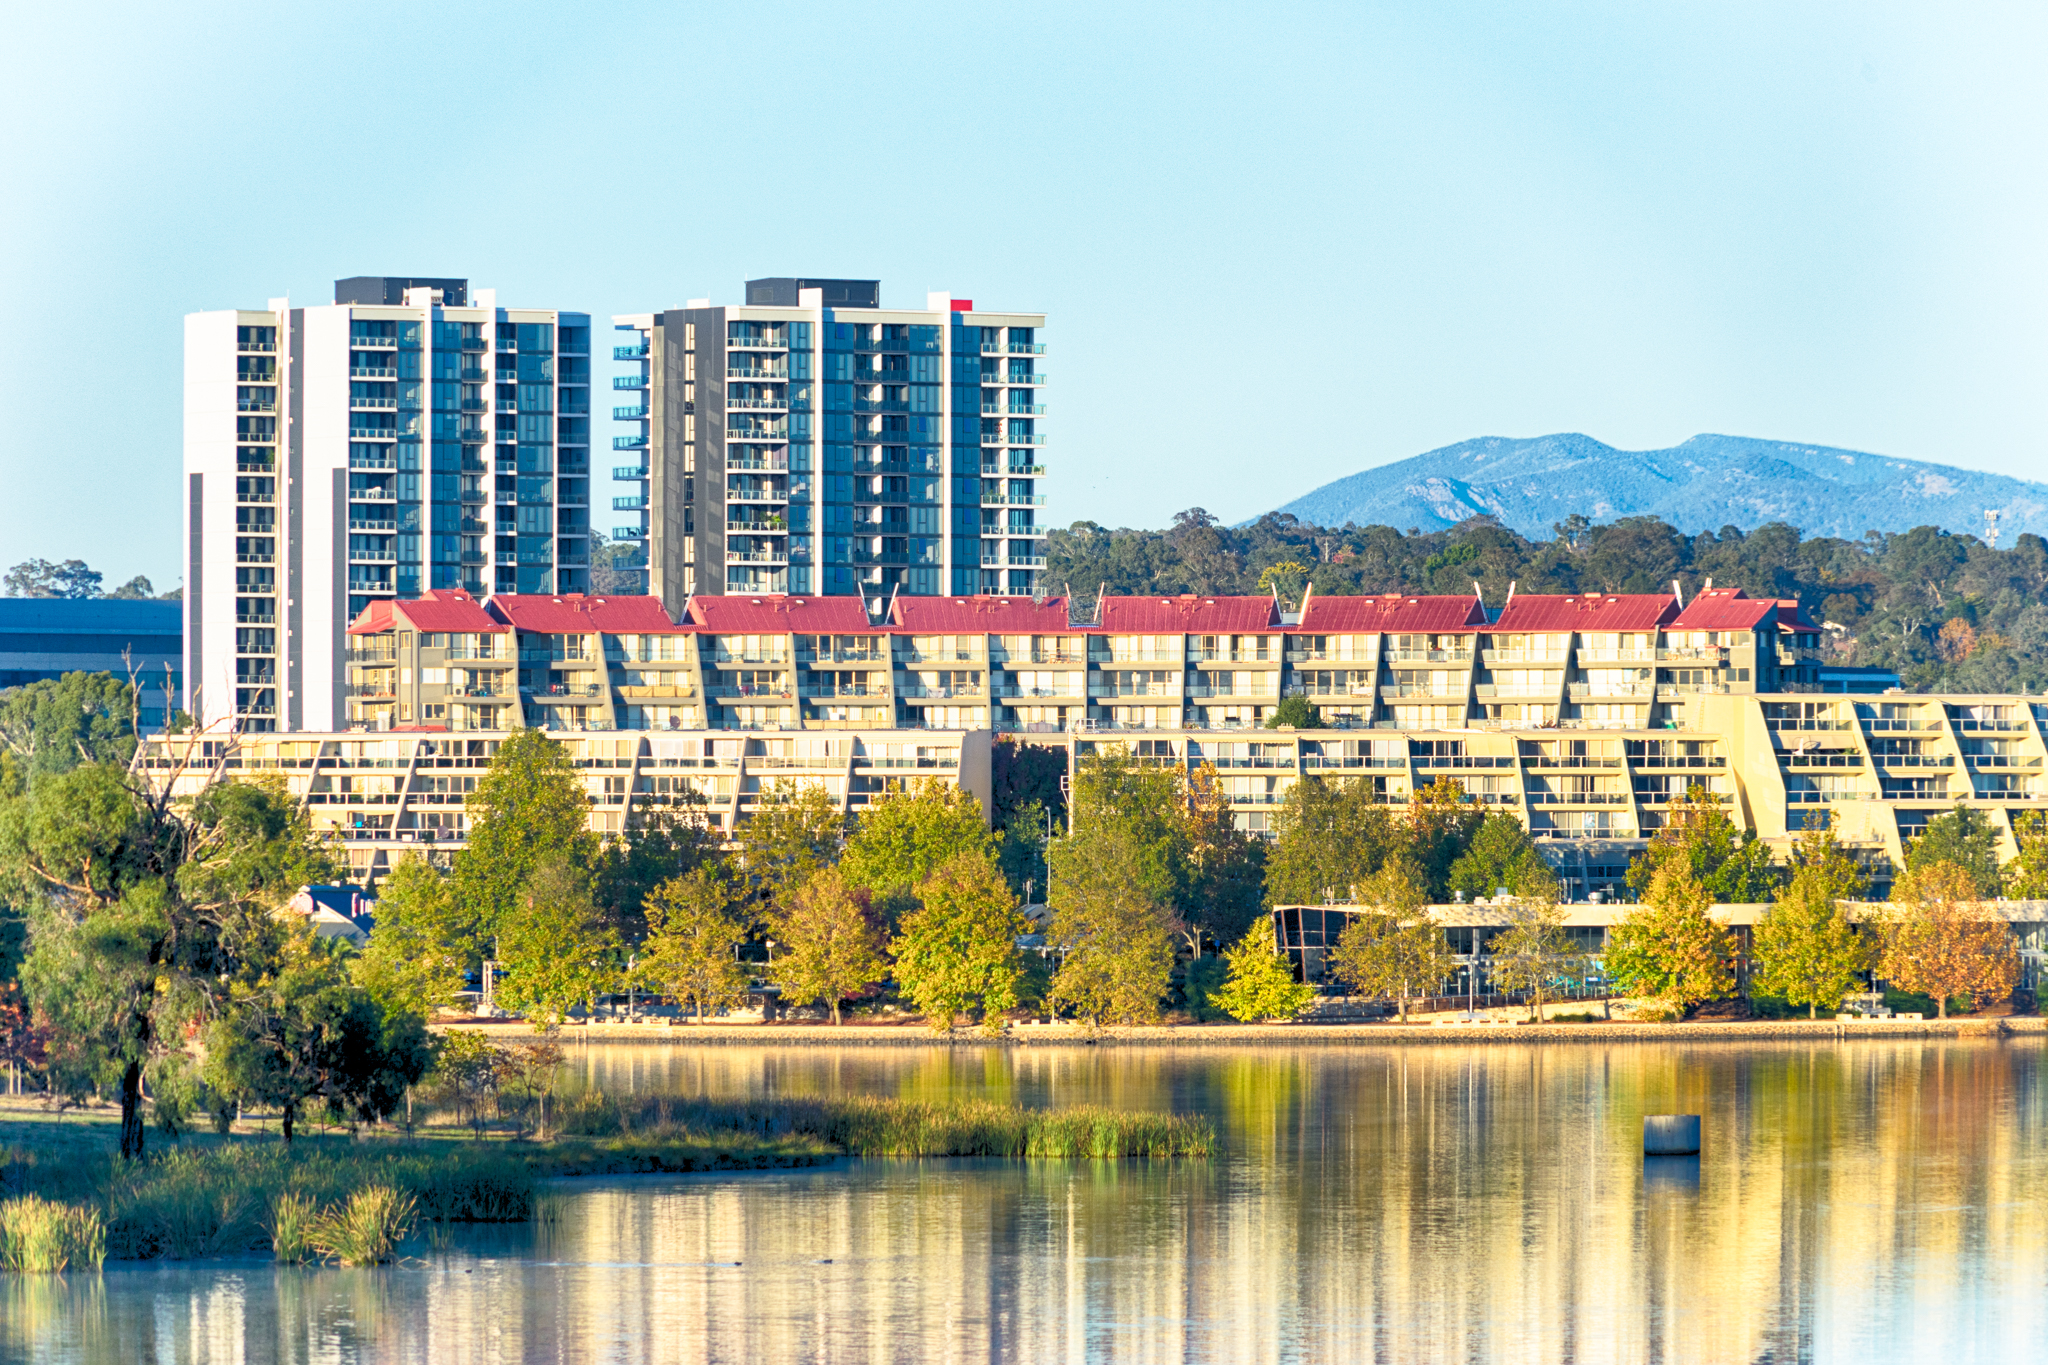 Belconnen from Lake Ginninderra